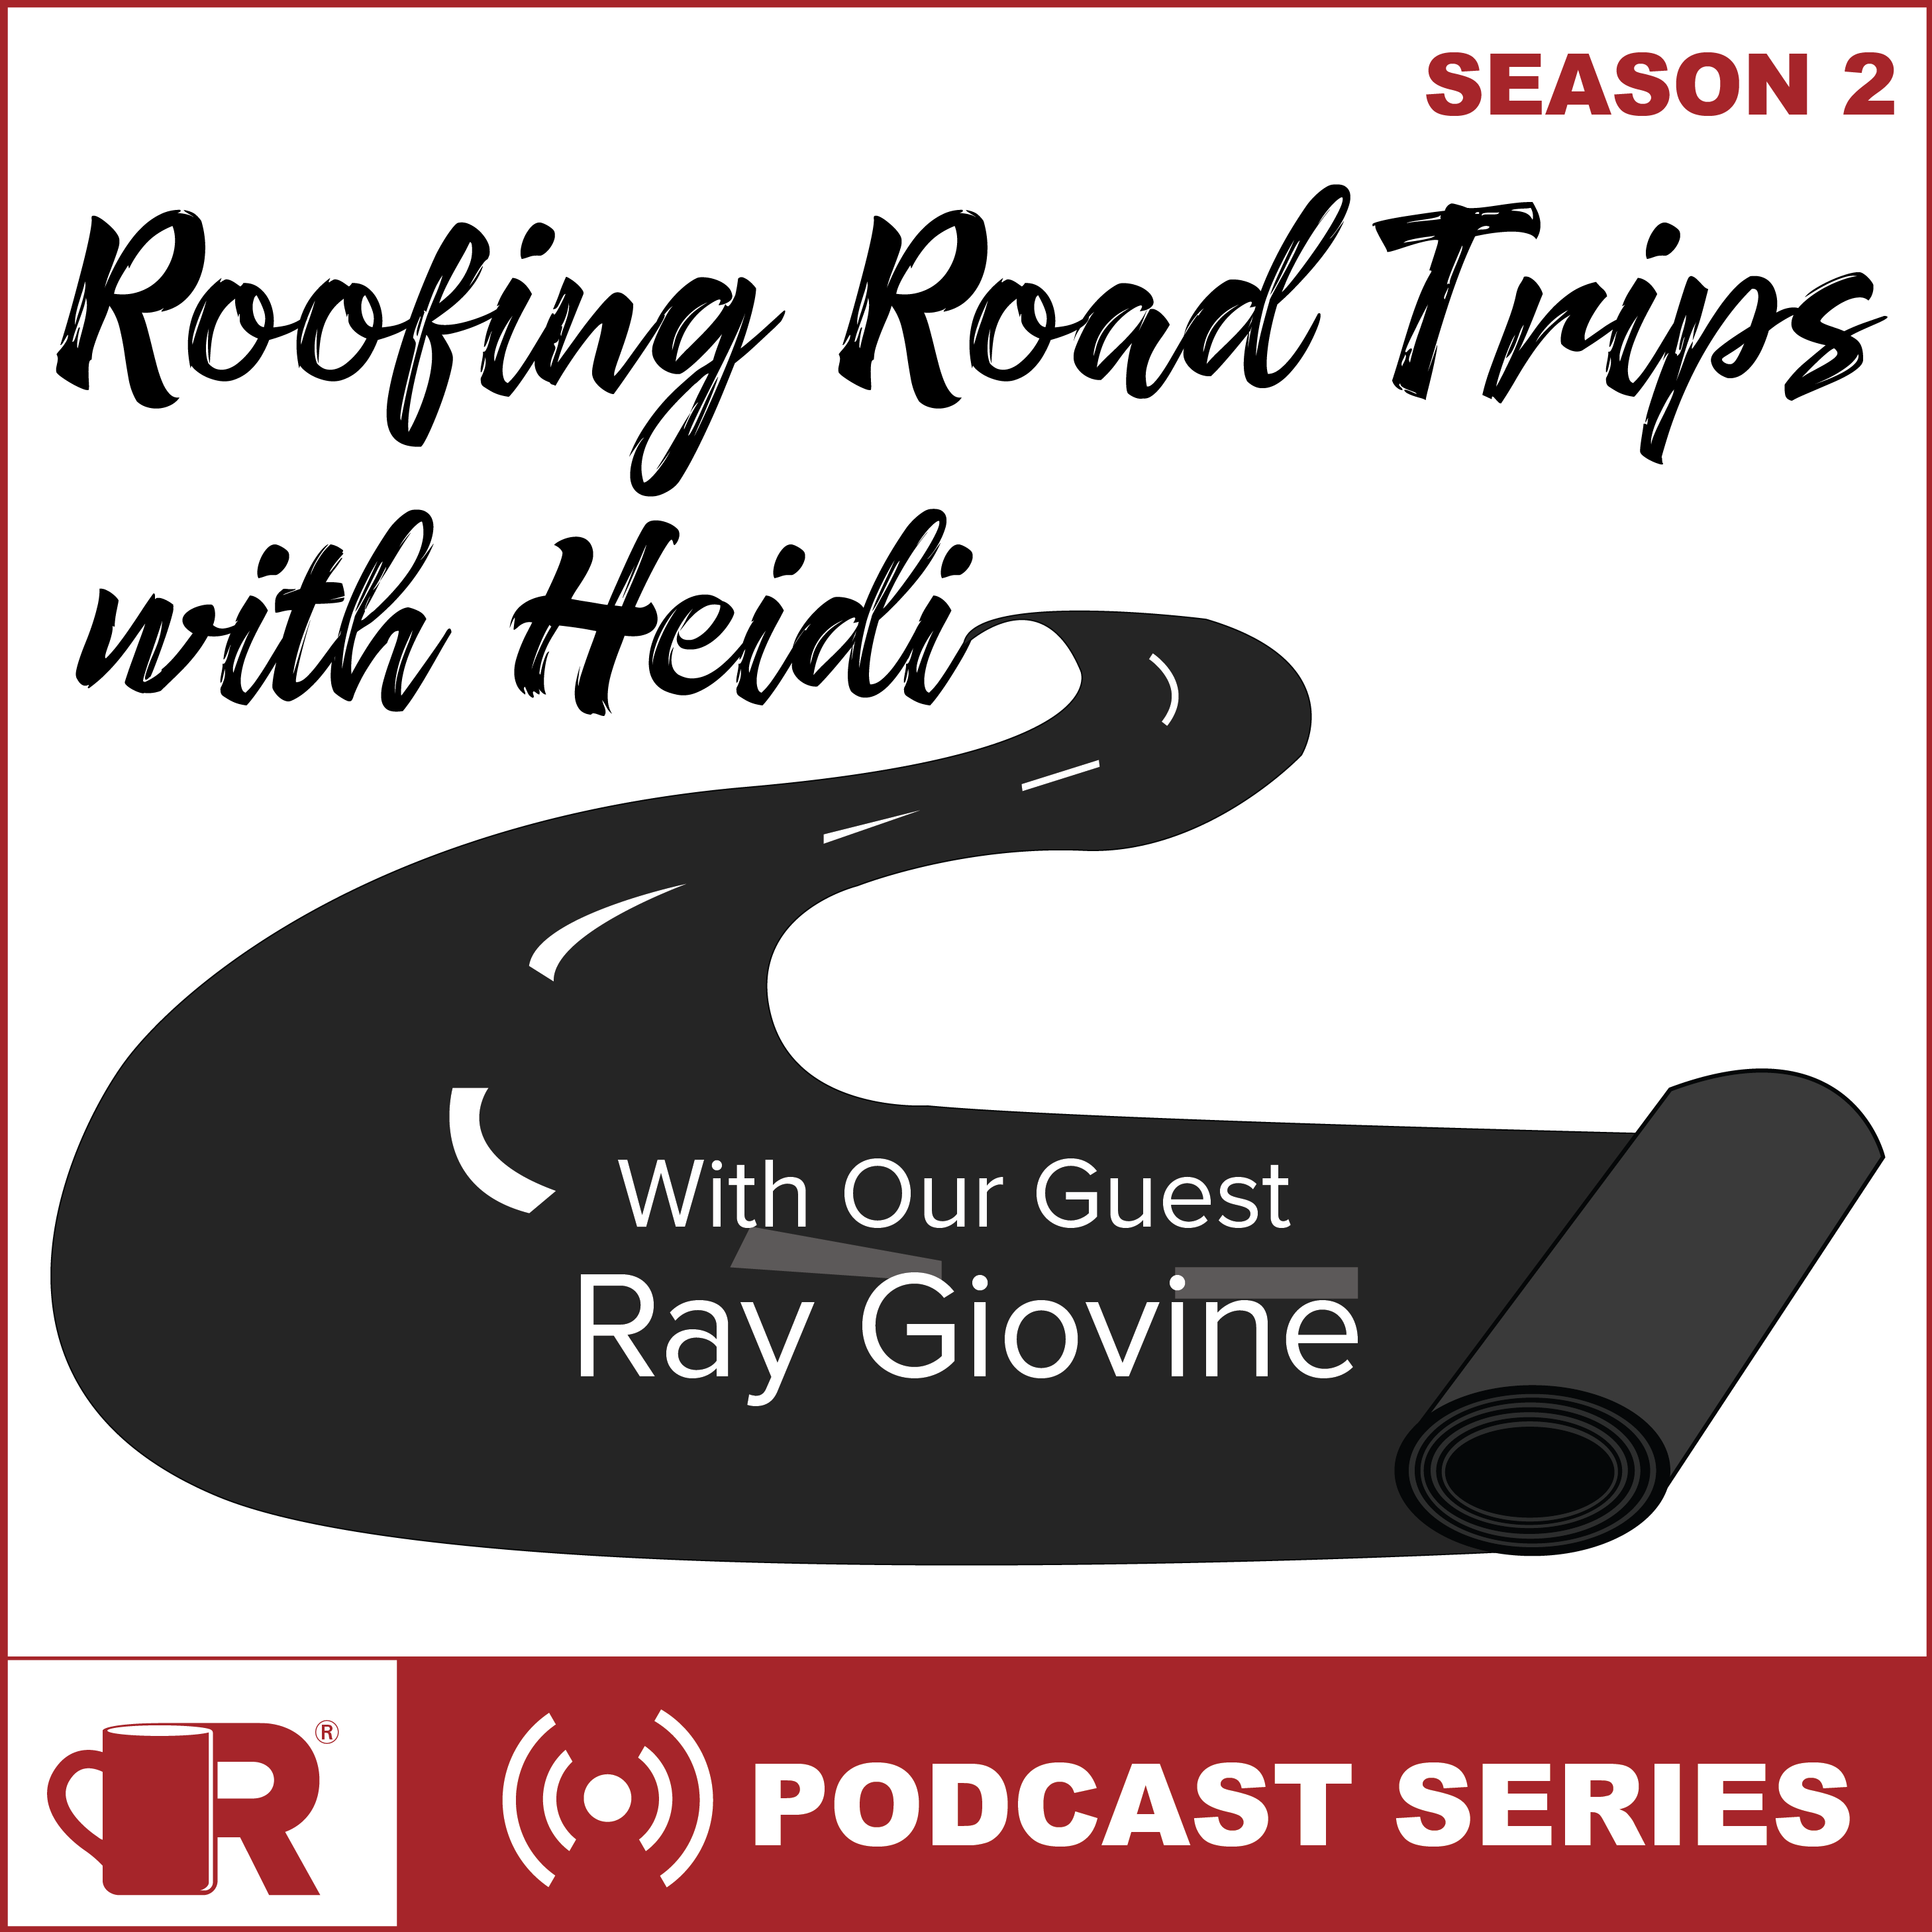 RRT with Heidi - Ray Giovine - IRE